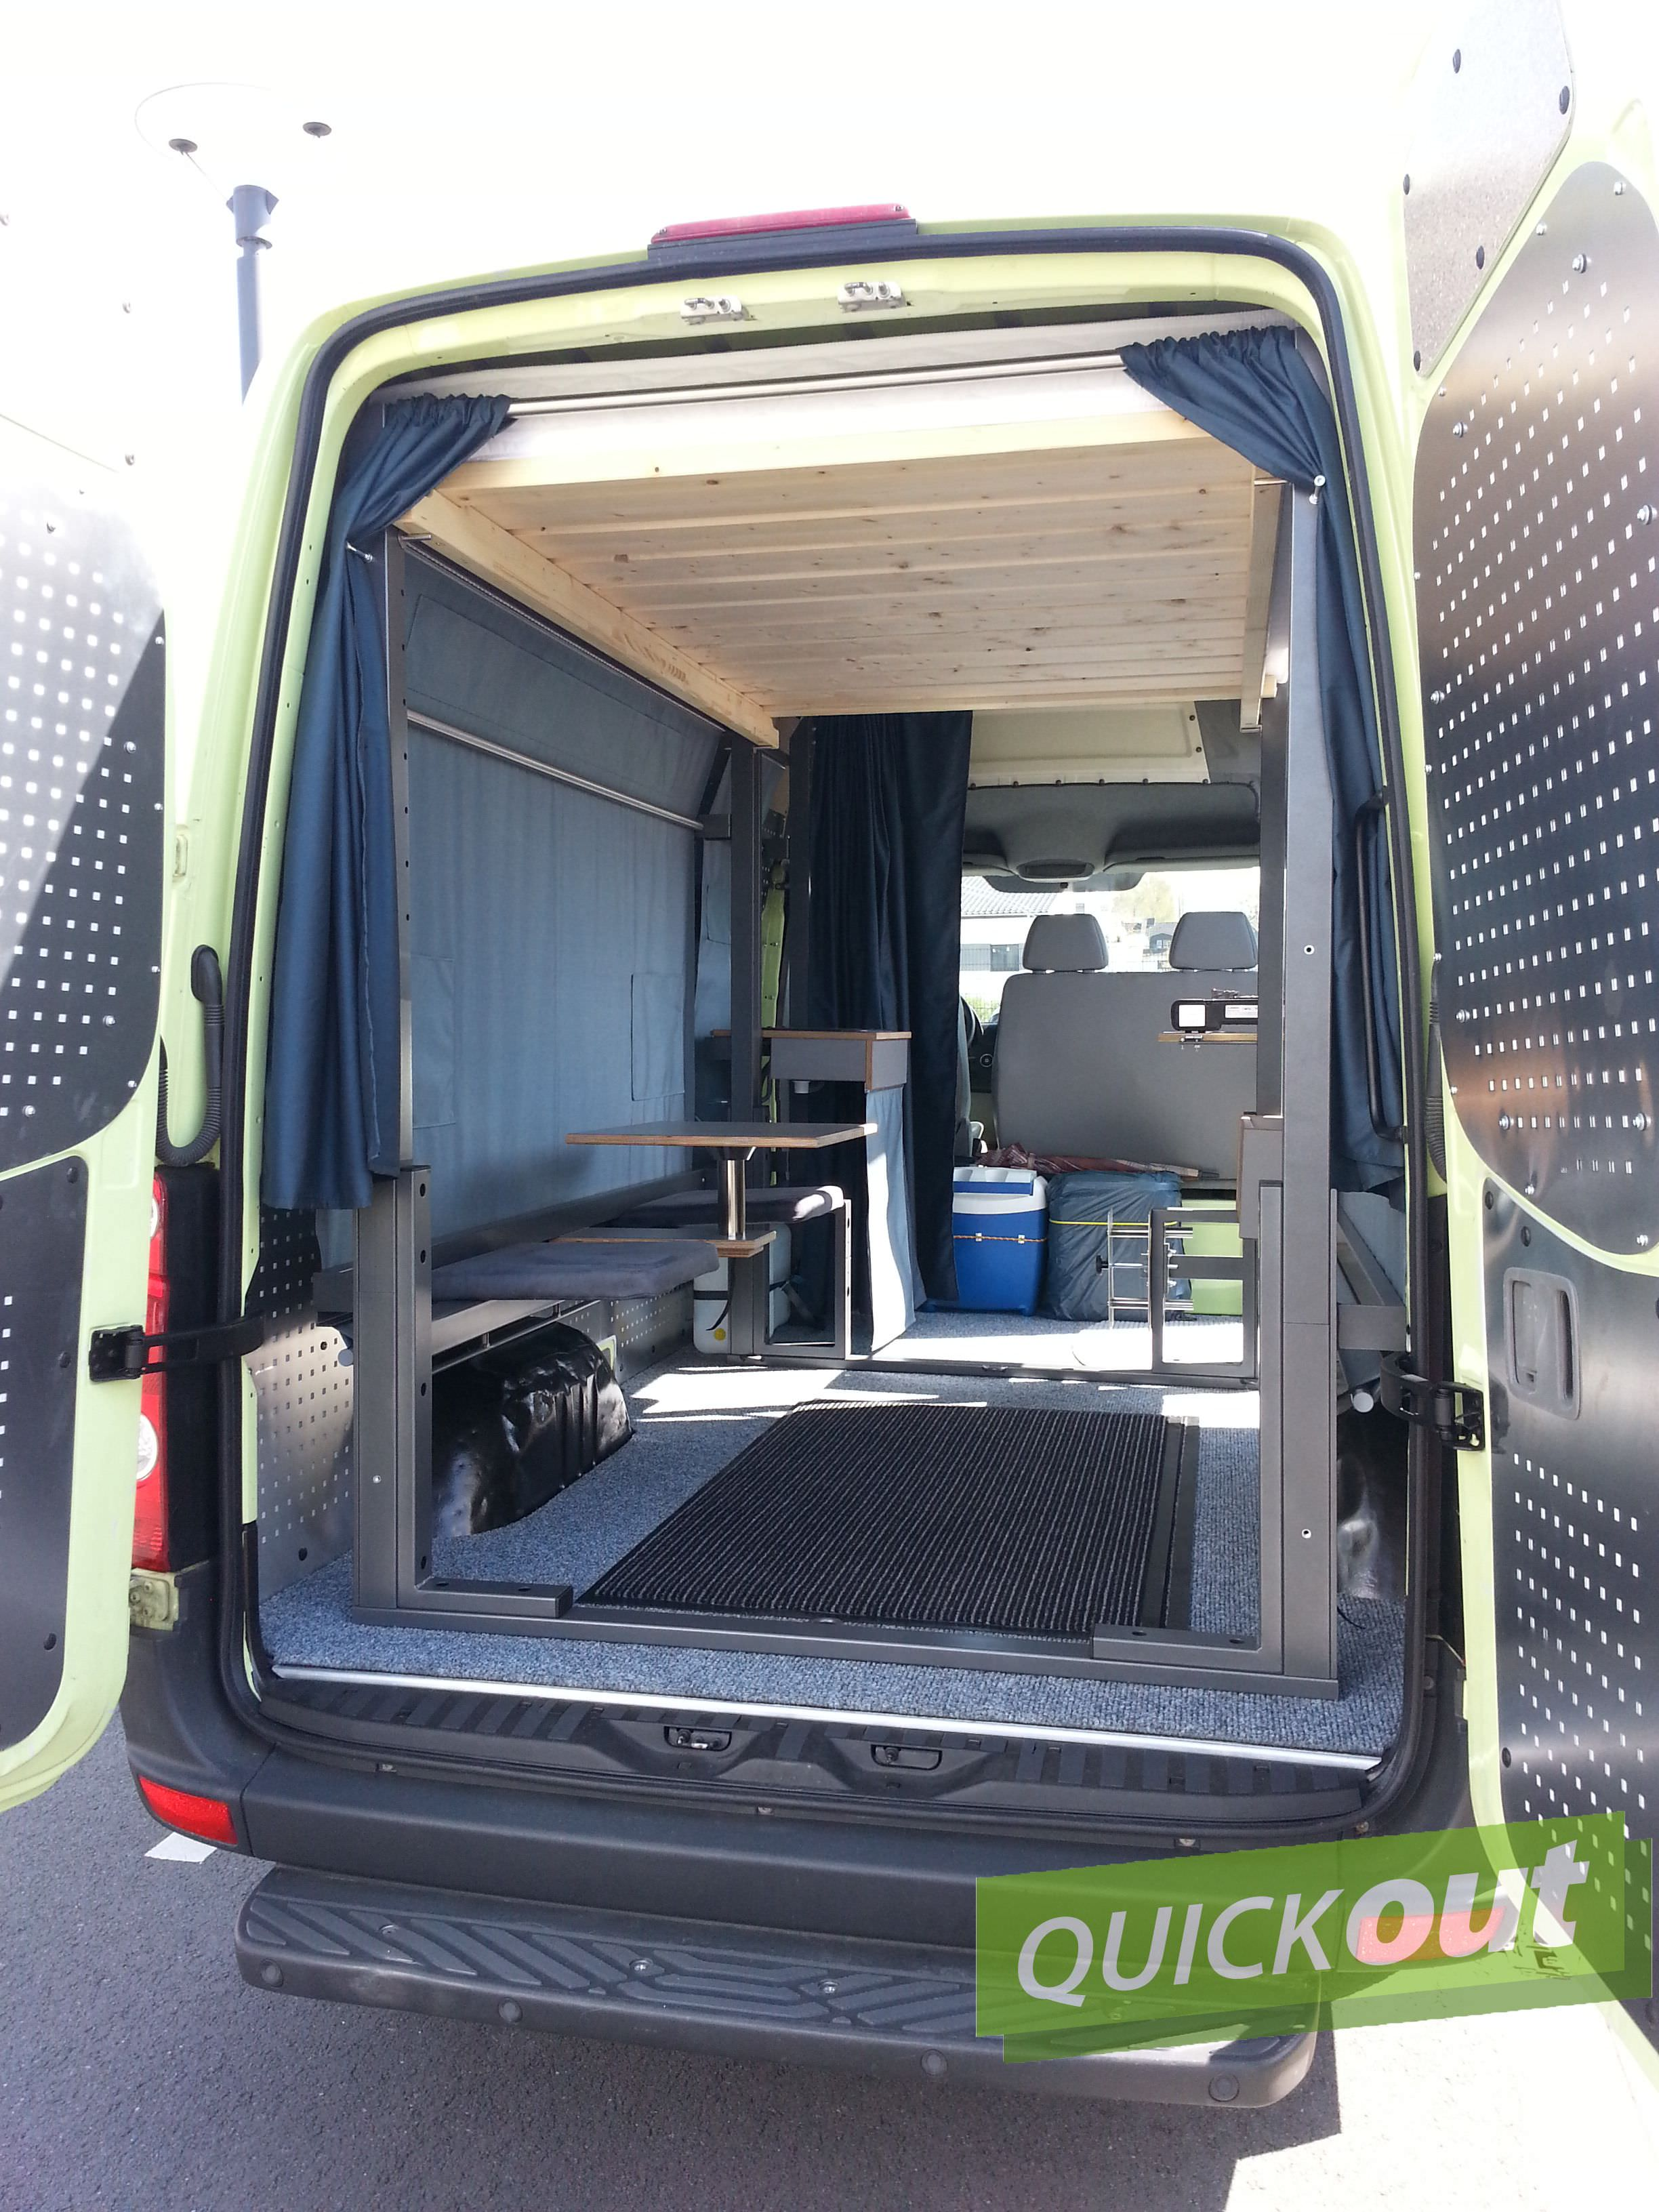 vw crafter quickout wohnmobilausbau. Black Bedroom Furniture Sets. Home Design Ideas